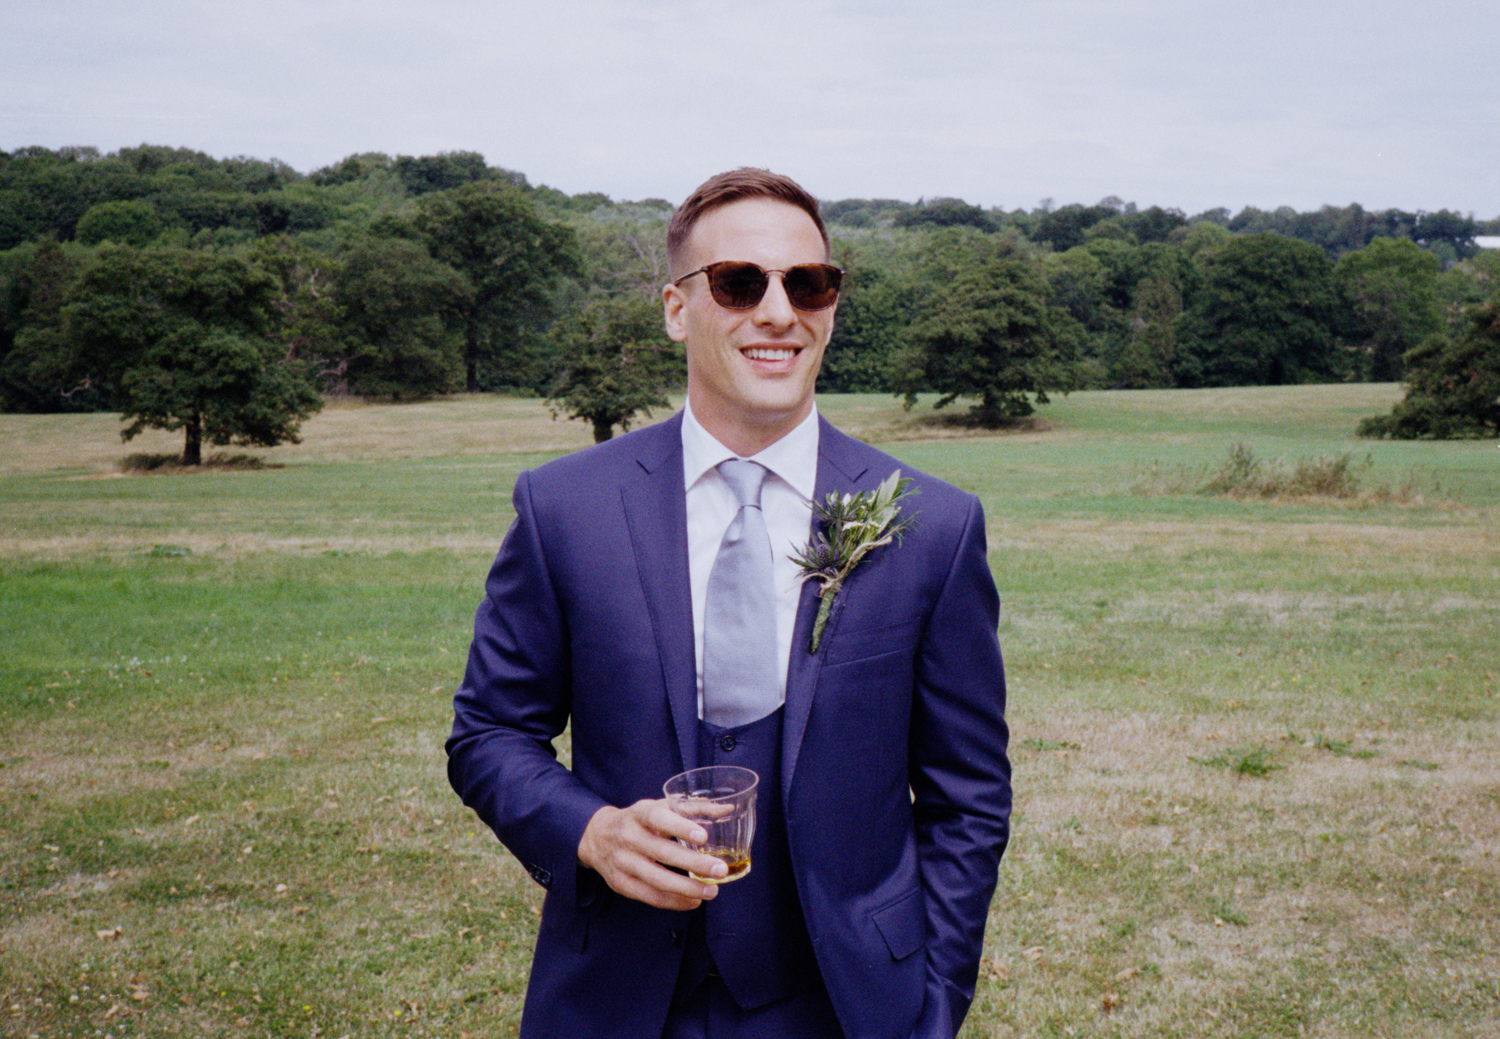 Photographing with film at weddings - a groom with whisky